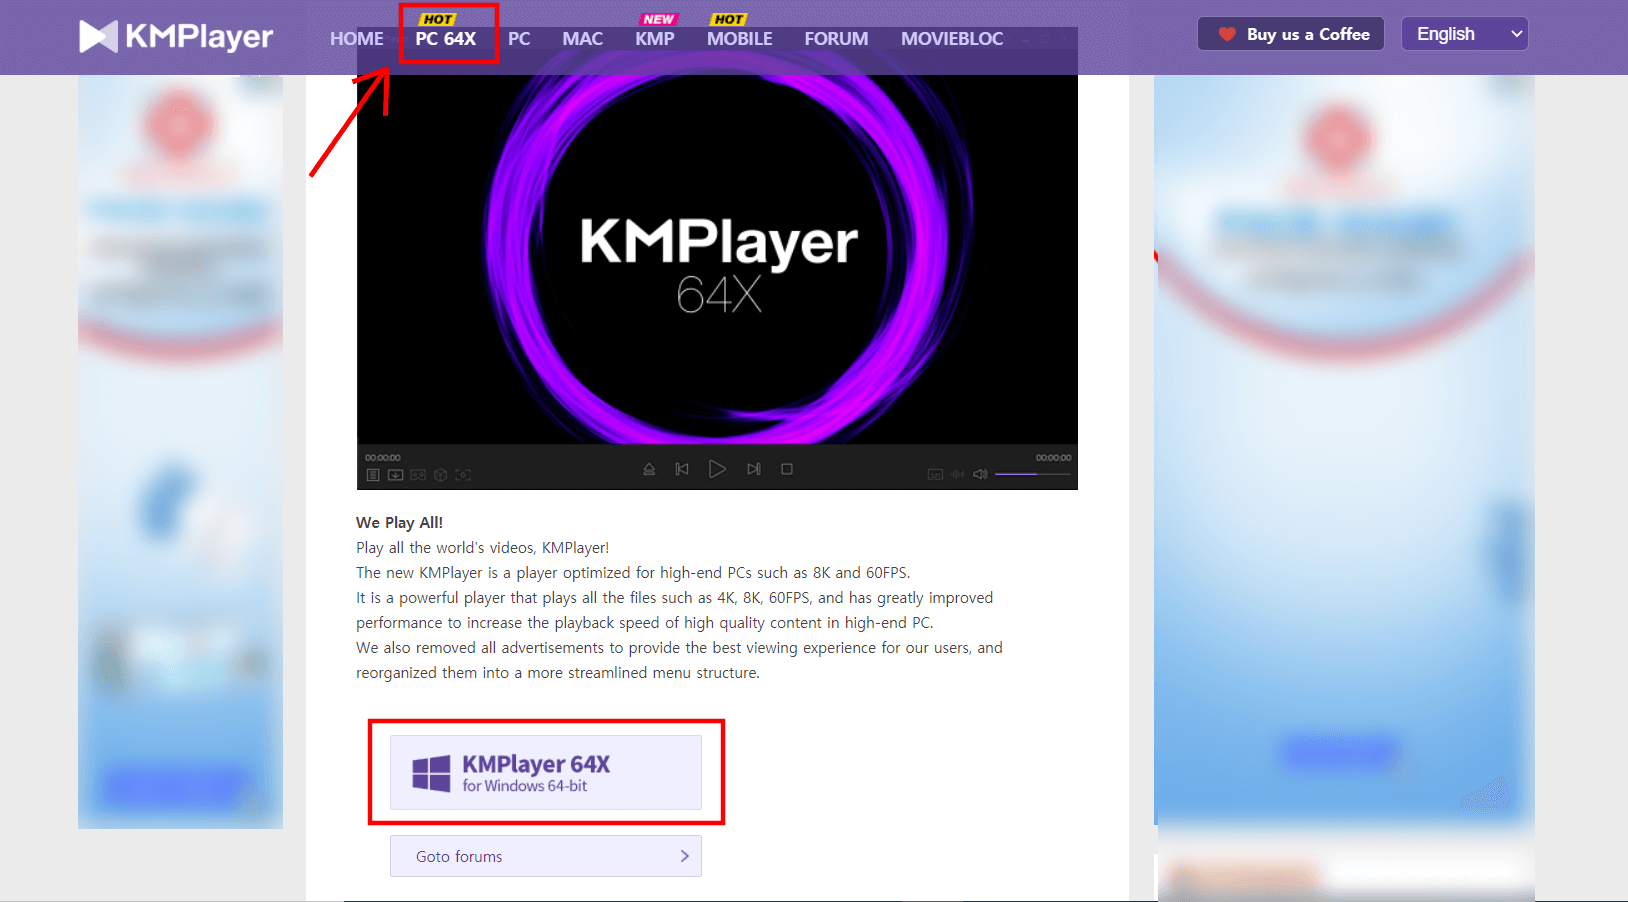 KMPlayer Download for 64bit